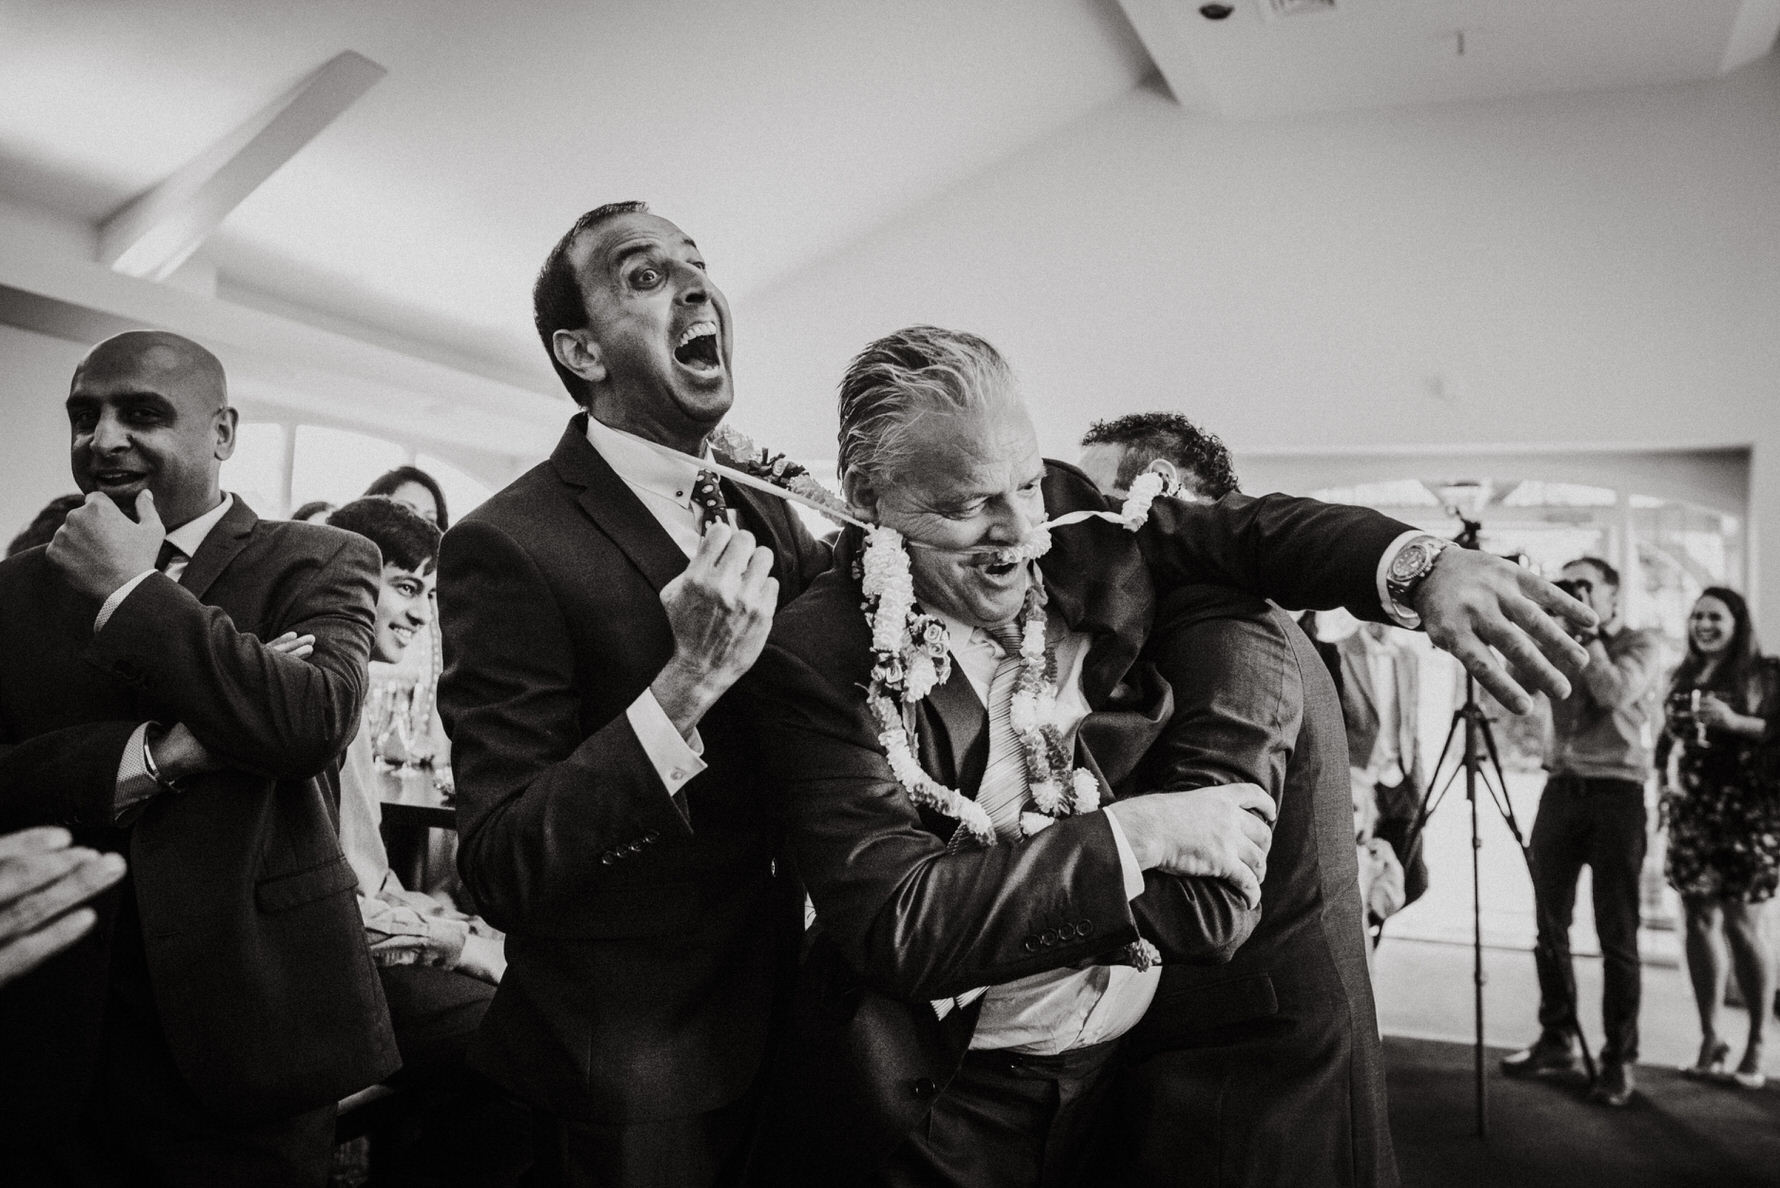 Documentary Wedding Photographer Louise Jacob captures a fun moment at Colshaw Hall